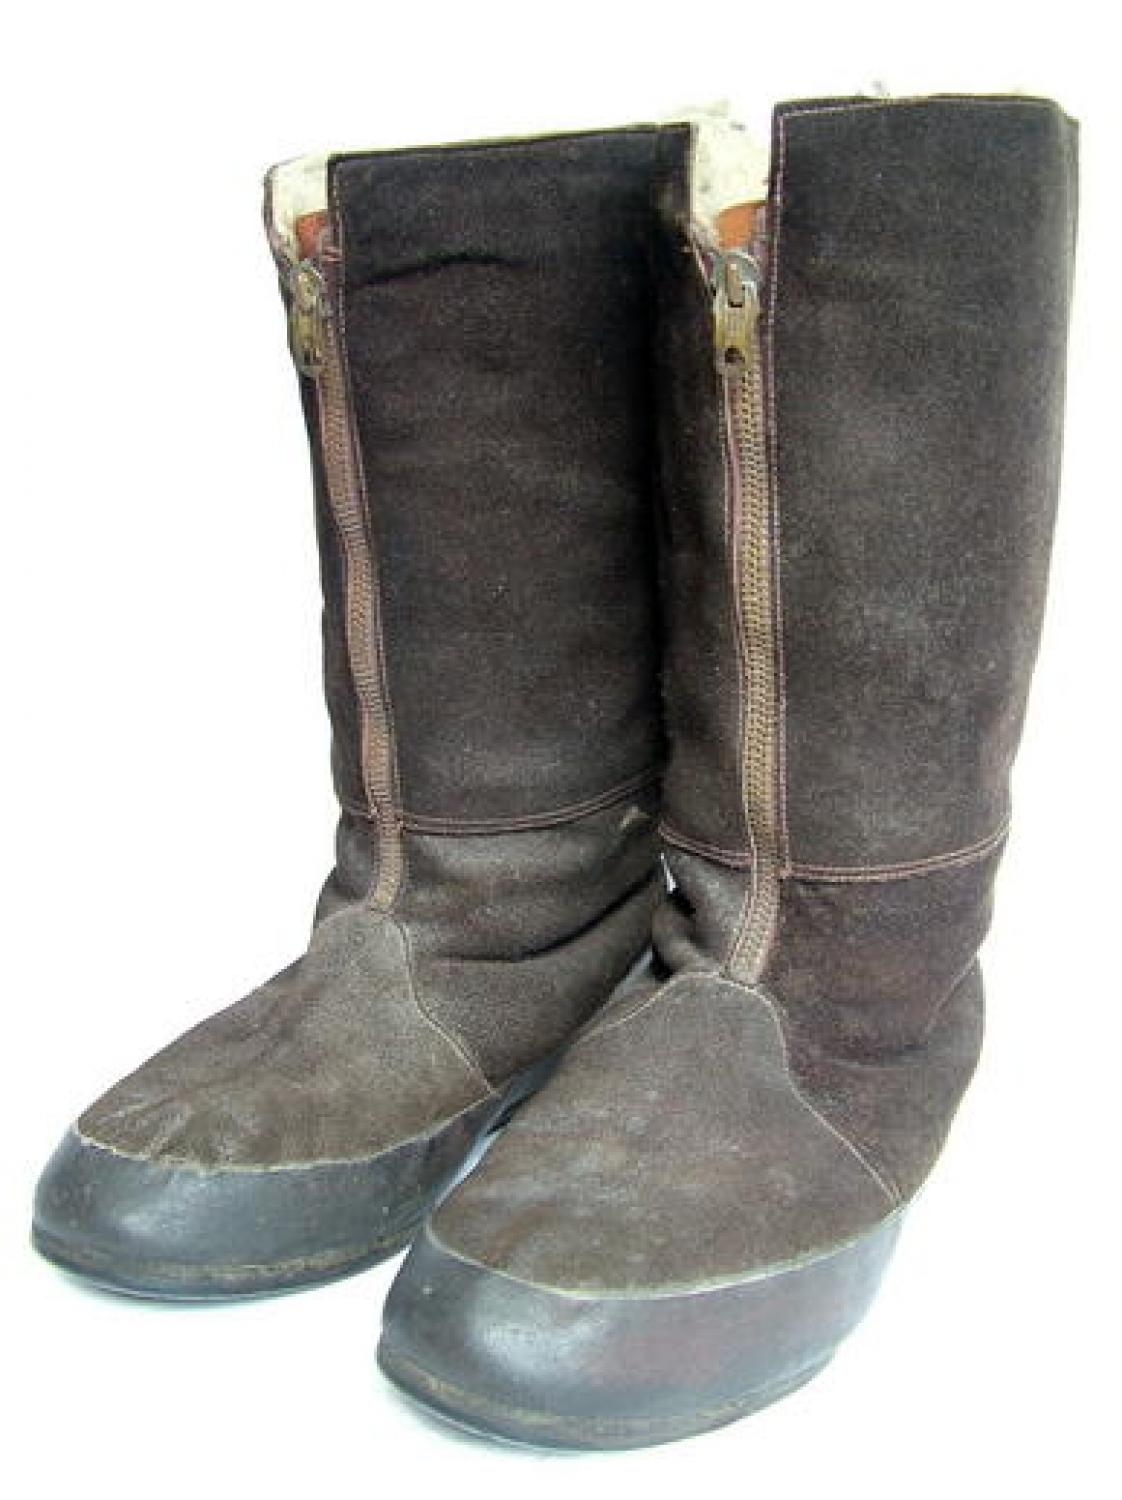 R.A.F 1940 Pattern Flying Boots